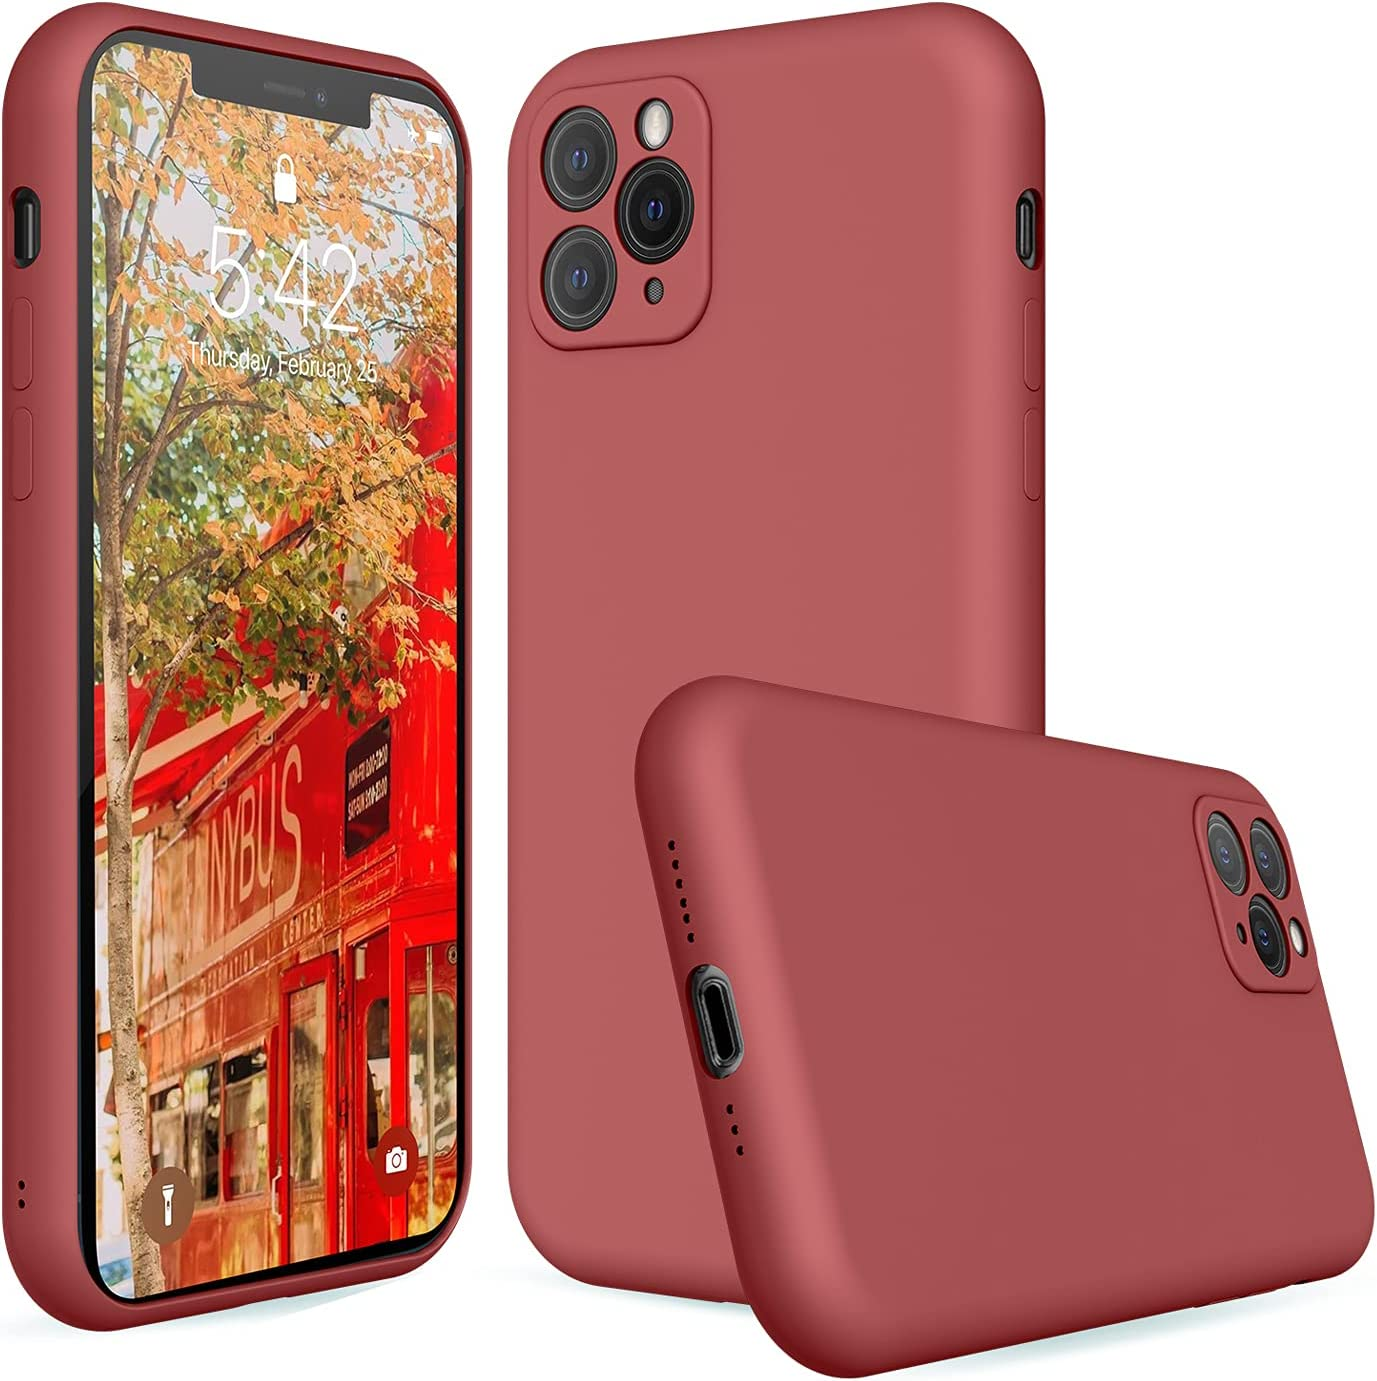 iPhone 11pro Silicone Case Camellia,Liquid Silicone Case Compatible with iPhone 11pro,Protective Cover Case for iPhone 11pro Camellia 5.8 Inch